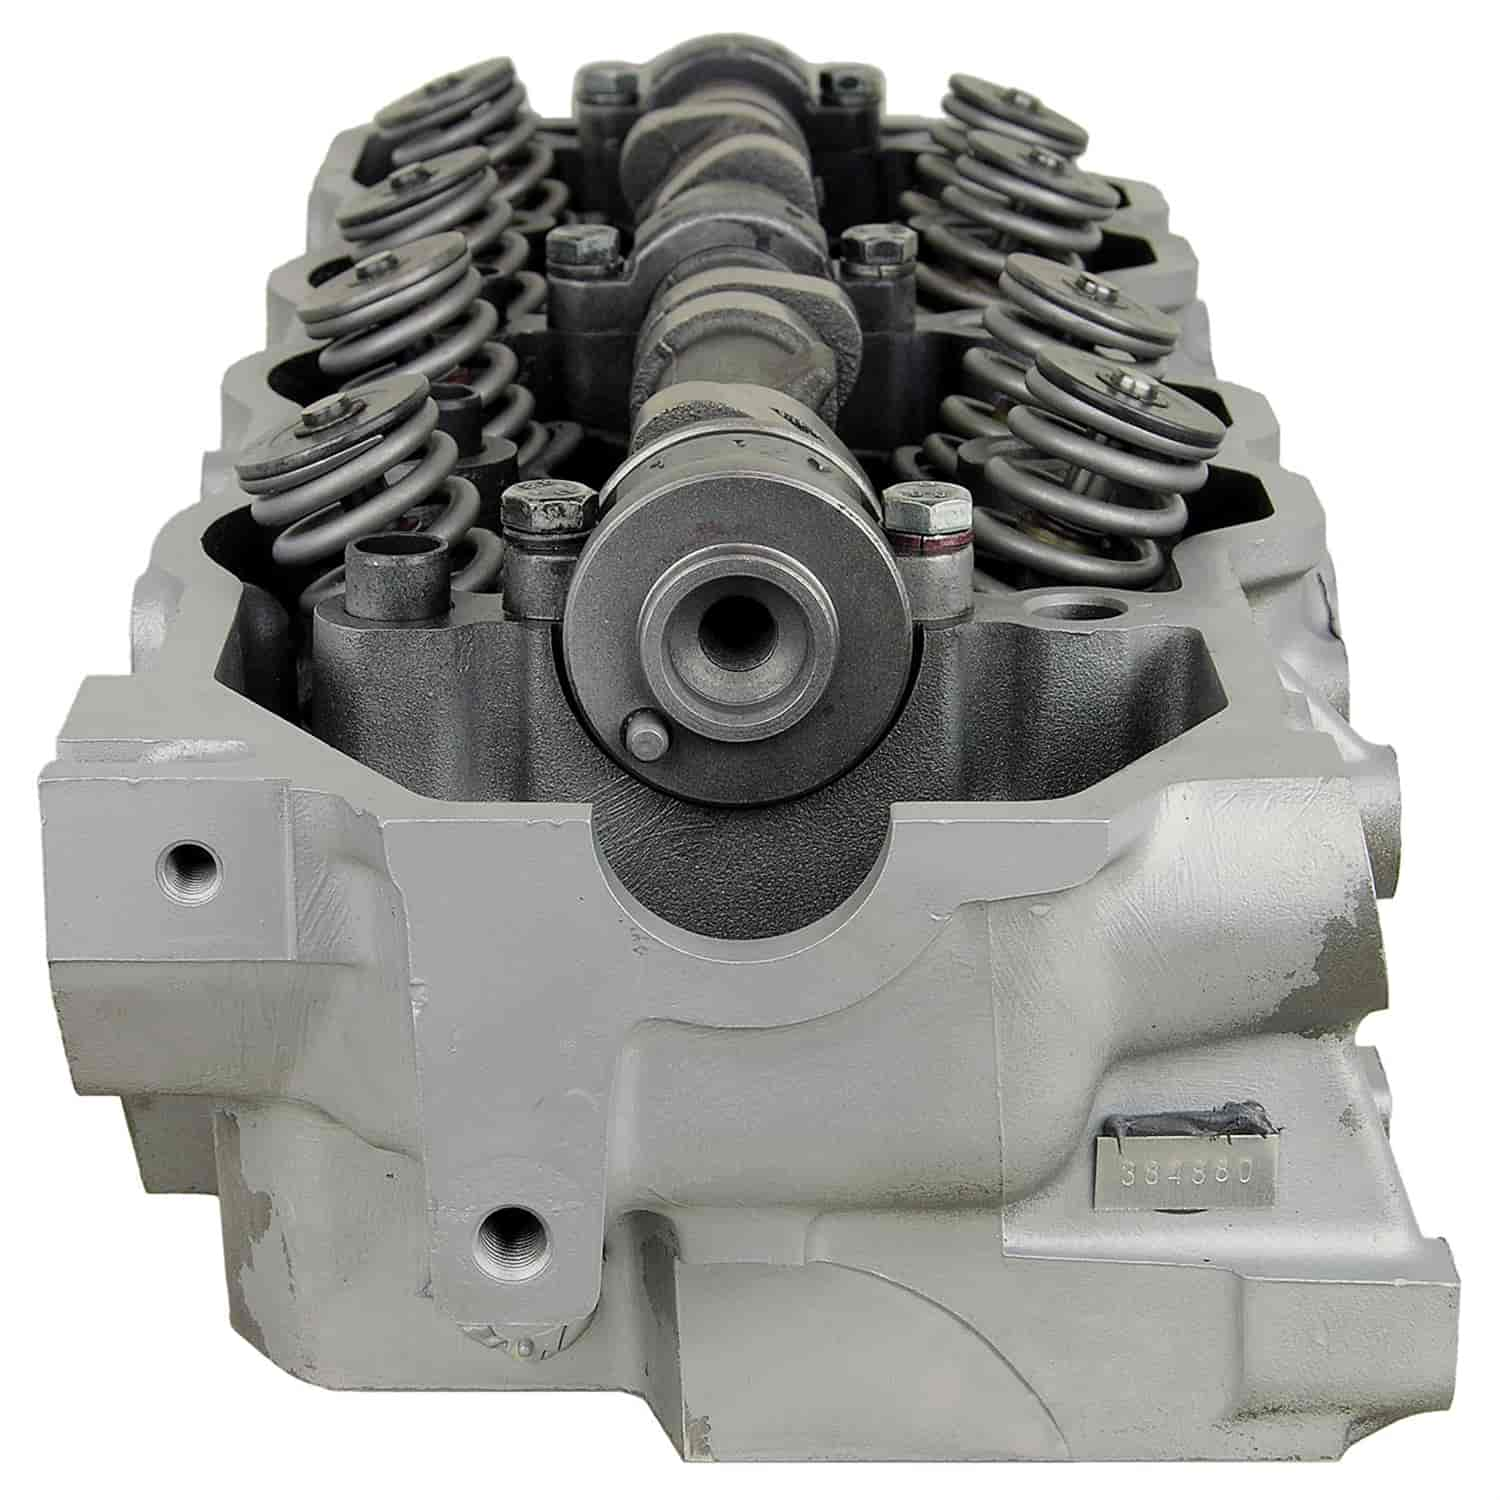 ATK Engines Remanufactured Cylinder Head for 1978-1980 Toyota with 2 2L L4  20R